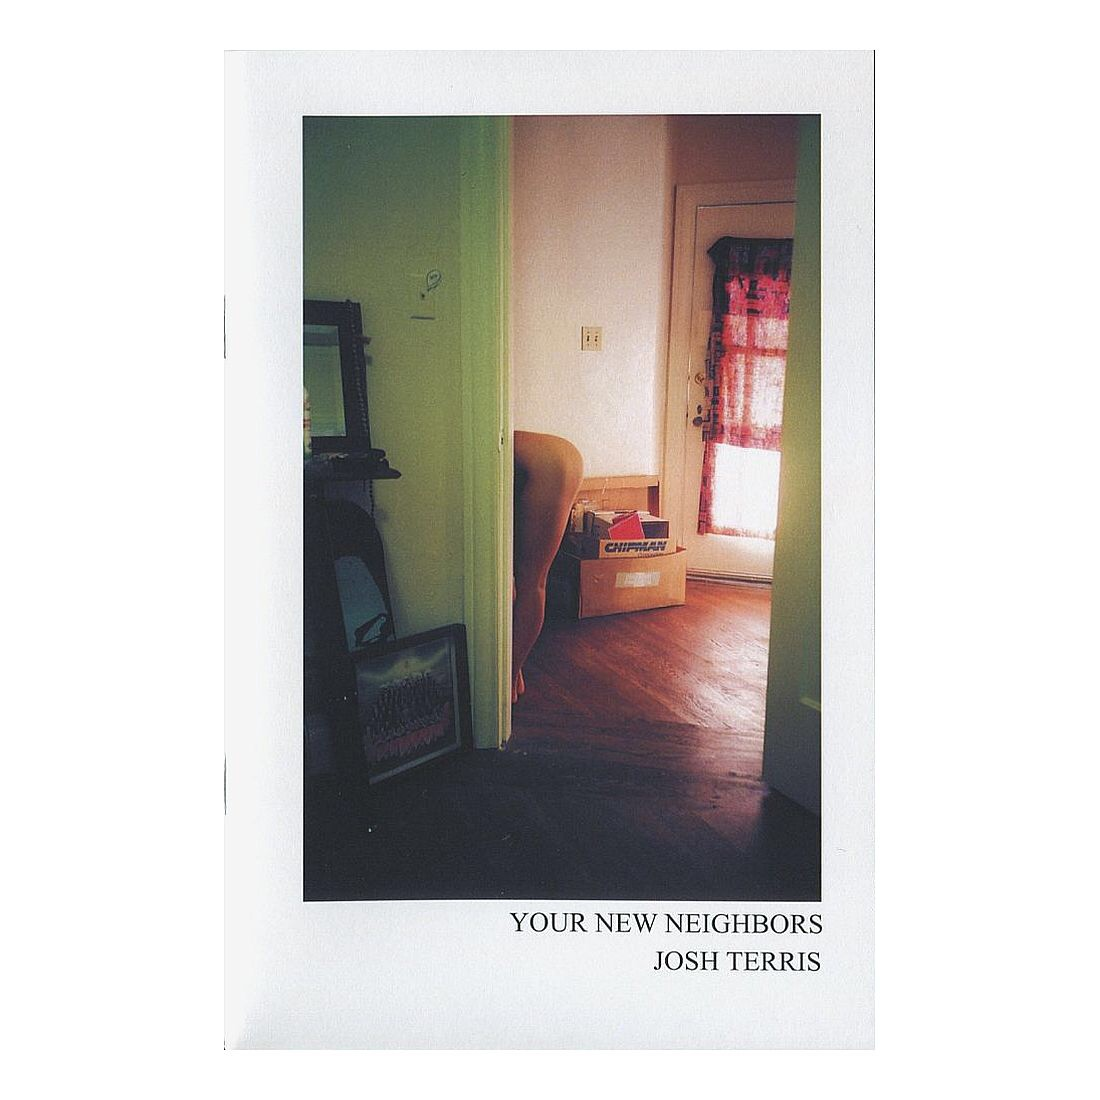 """Down to the last copies::    http://nighted.storenvy.com/products/11358000-your-new-neighbors-by-josh-terris      josesh :    my first solo zine. """"Your new neighbors"""" 28 pages, color, full bleed. available at nighted.storenvy.com"""